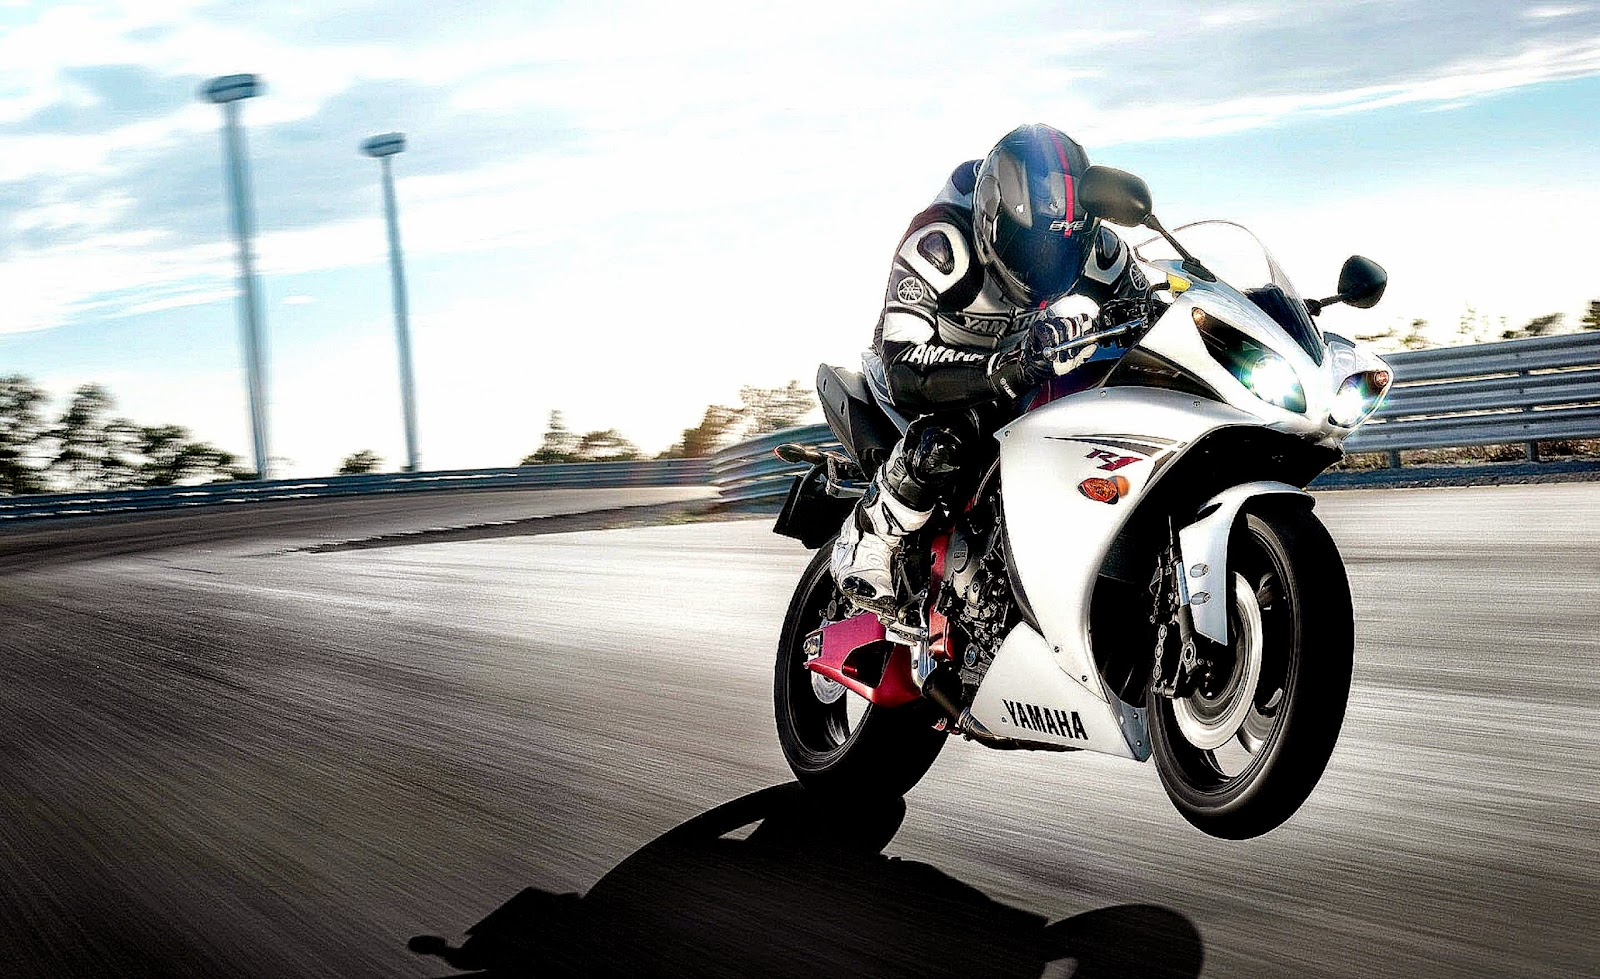 Yamaha R1 Wallpapers   Full HD wallpaper search